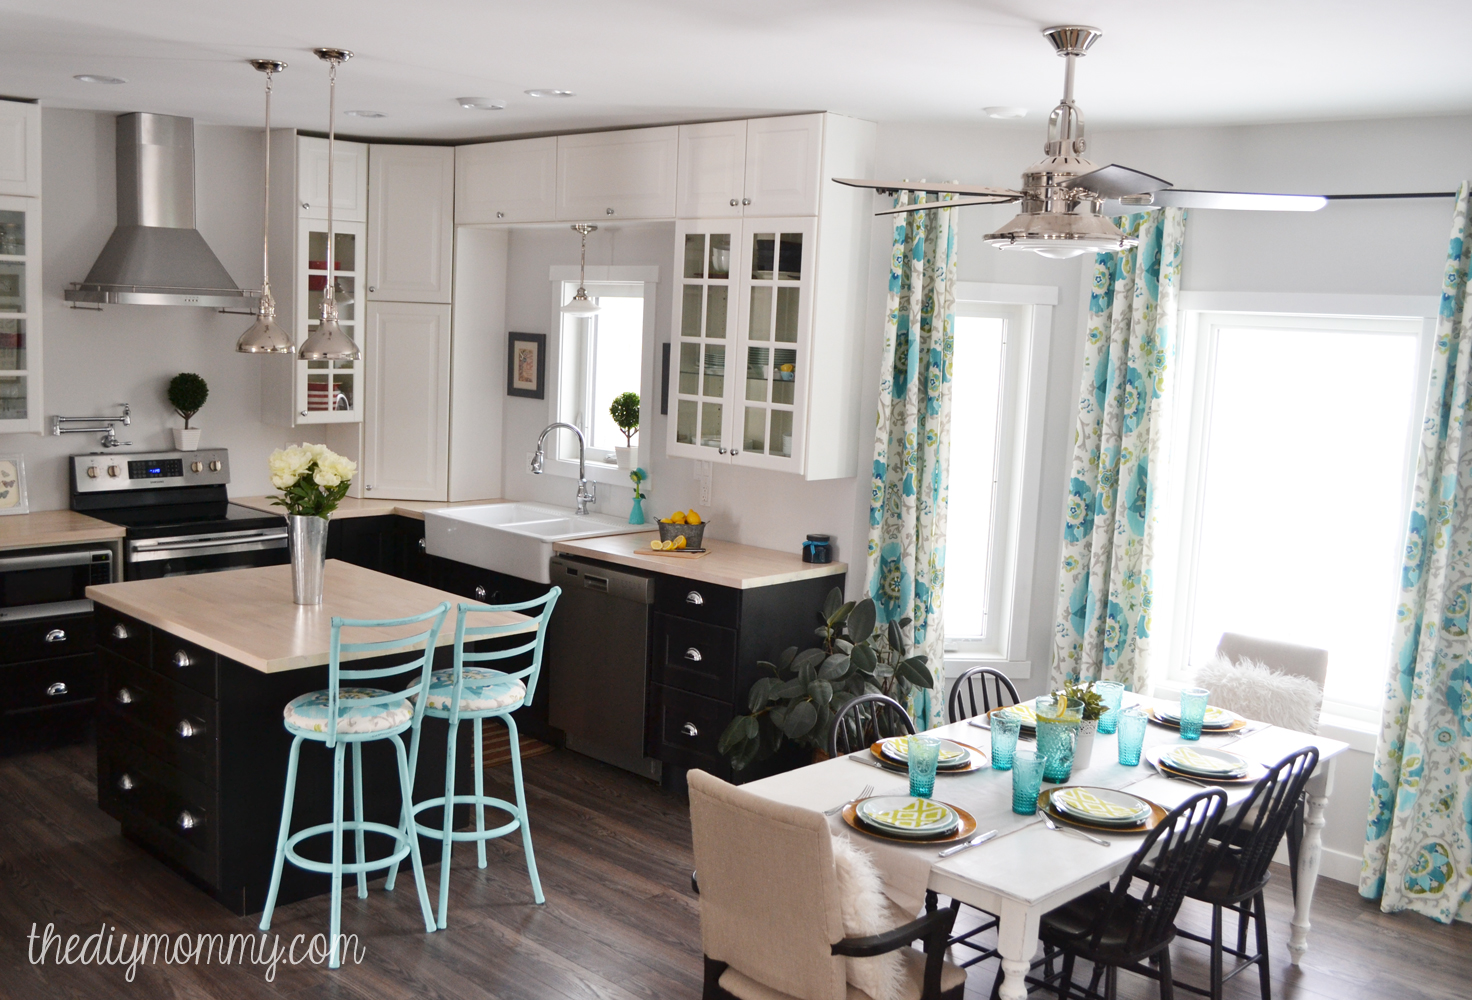 A black white and turquoise diy kitchen design with ikea cabinets handmade drapes and diy Kitchen design diy ideas